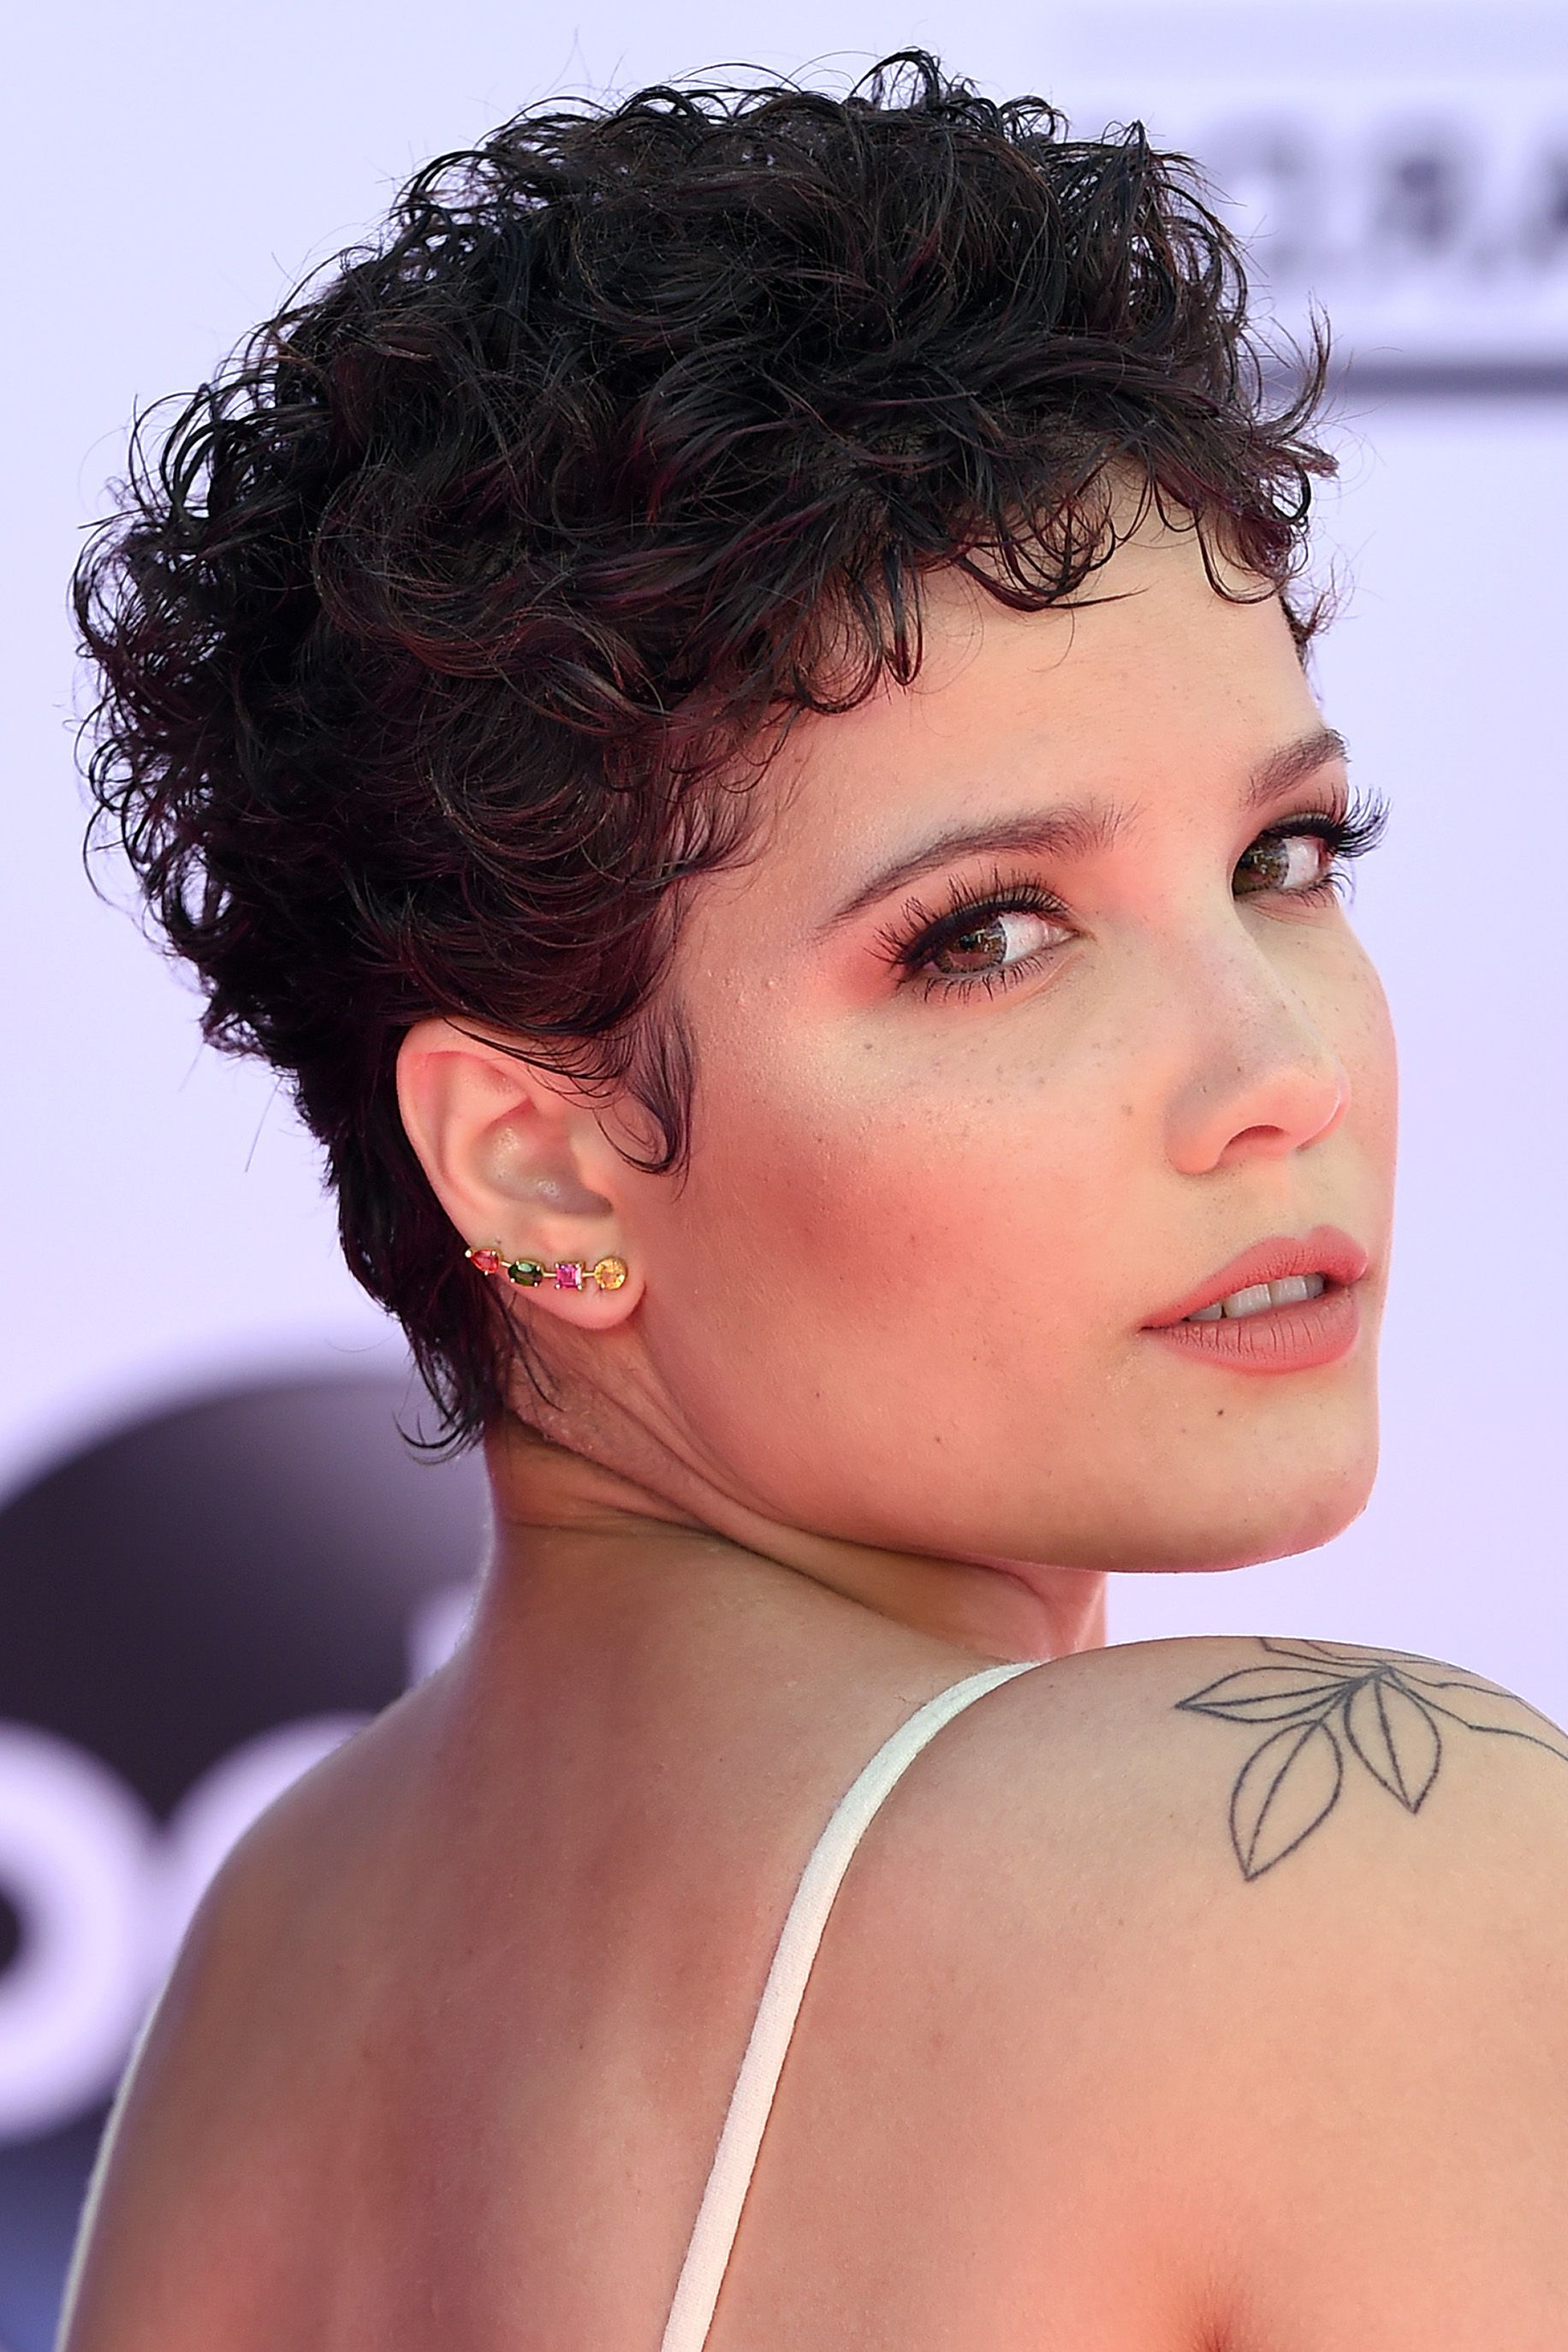 20 Best Short Curly Hairstyles 2019 – Cute Short Haircuts With Pixie Haircuts With Large Curls (View 3 of 20)